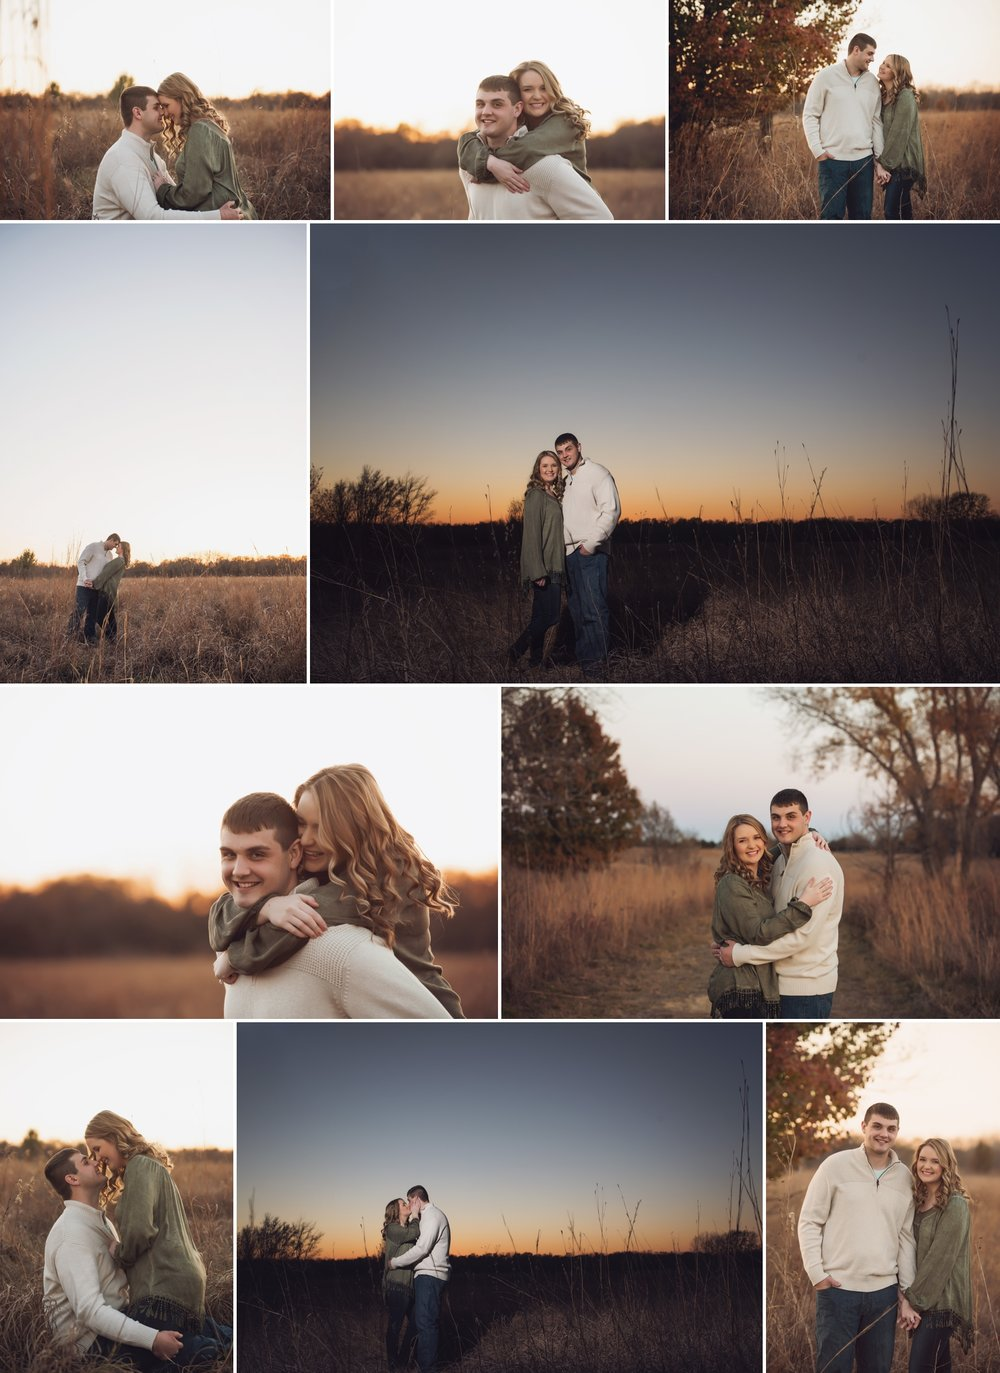 wichita-kansas-engagement-photography 2.jpg